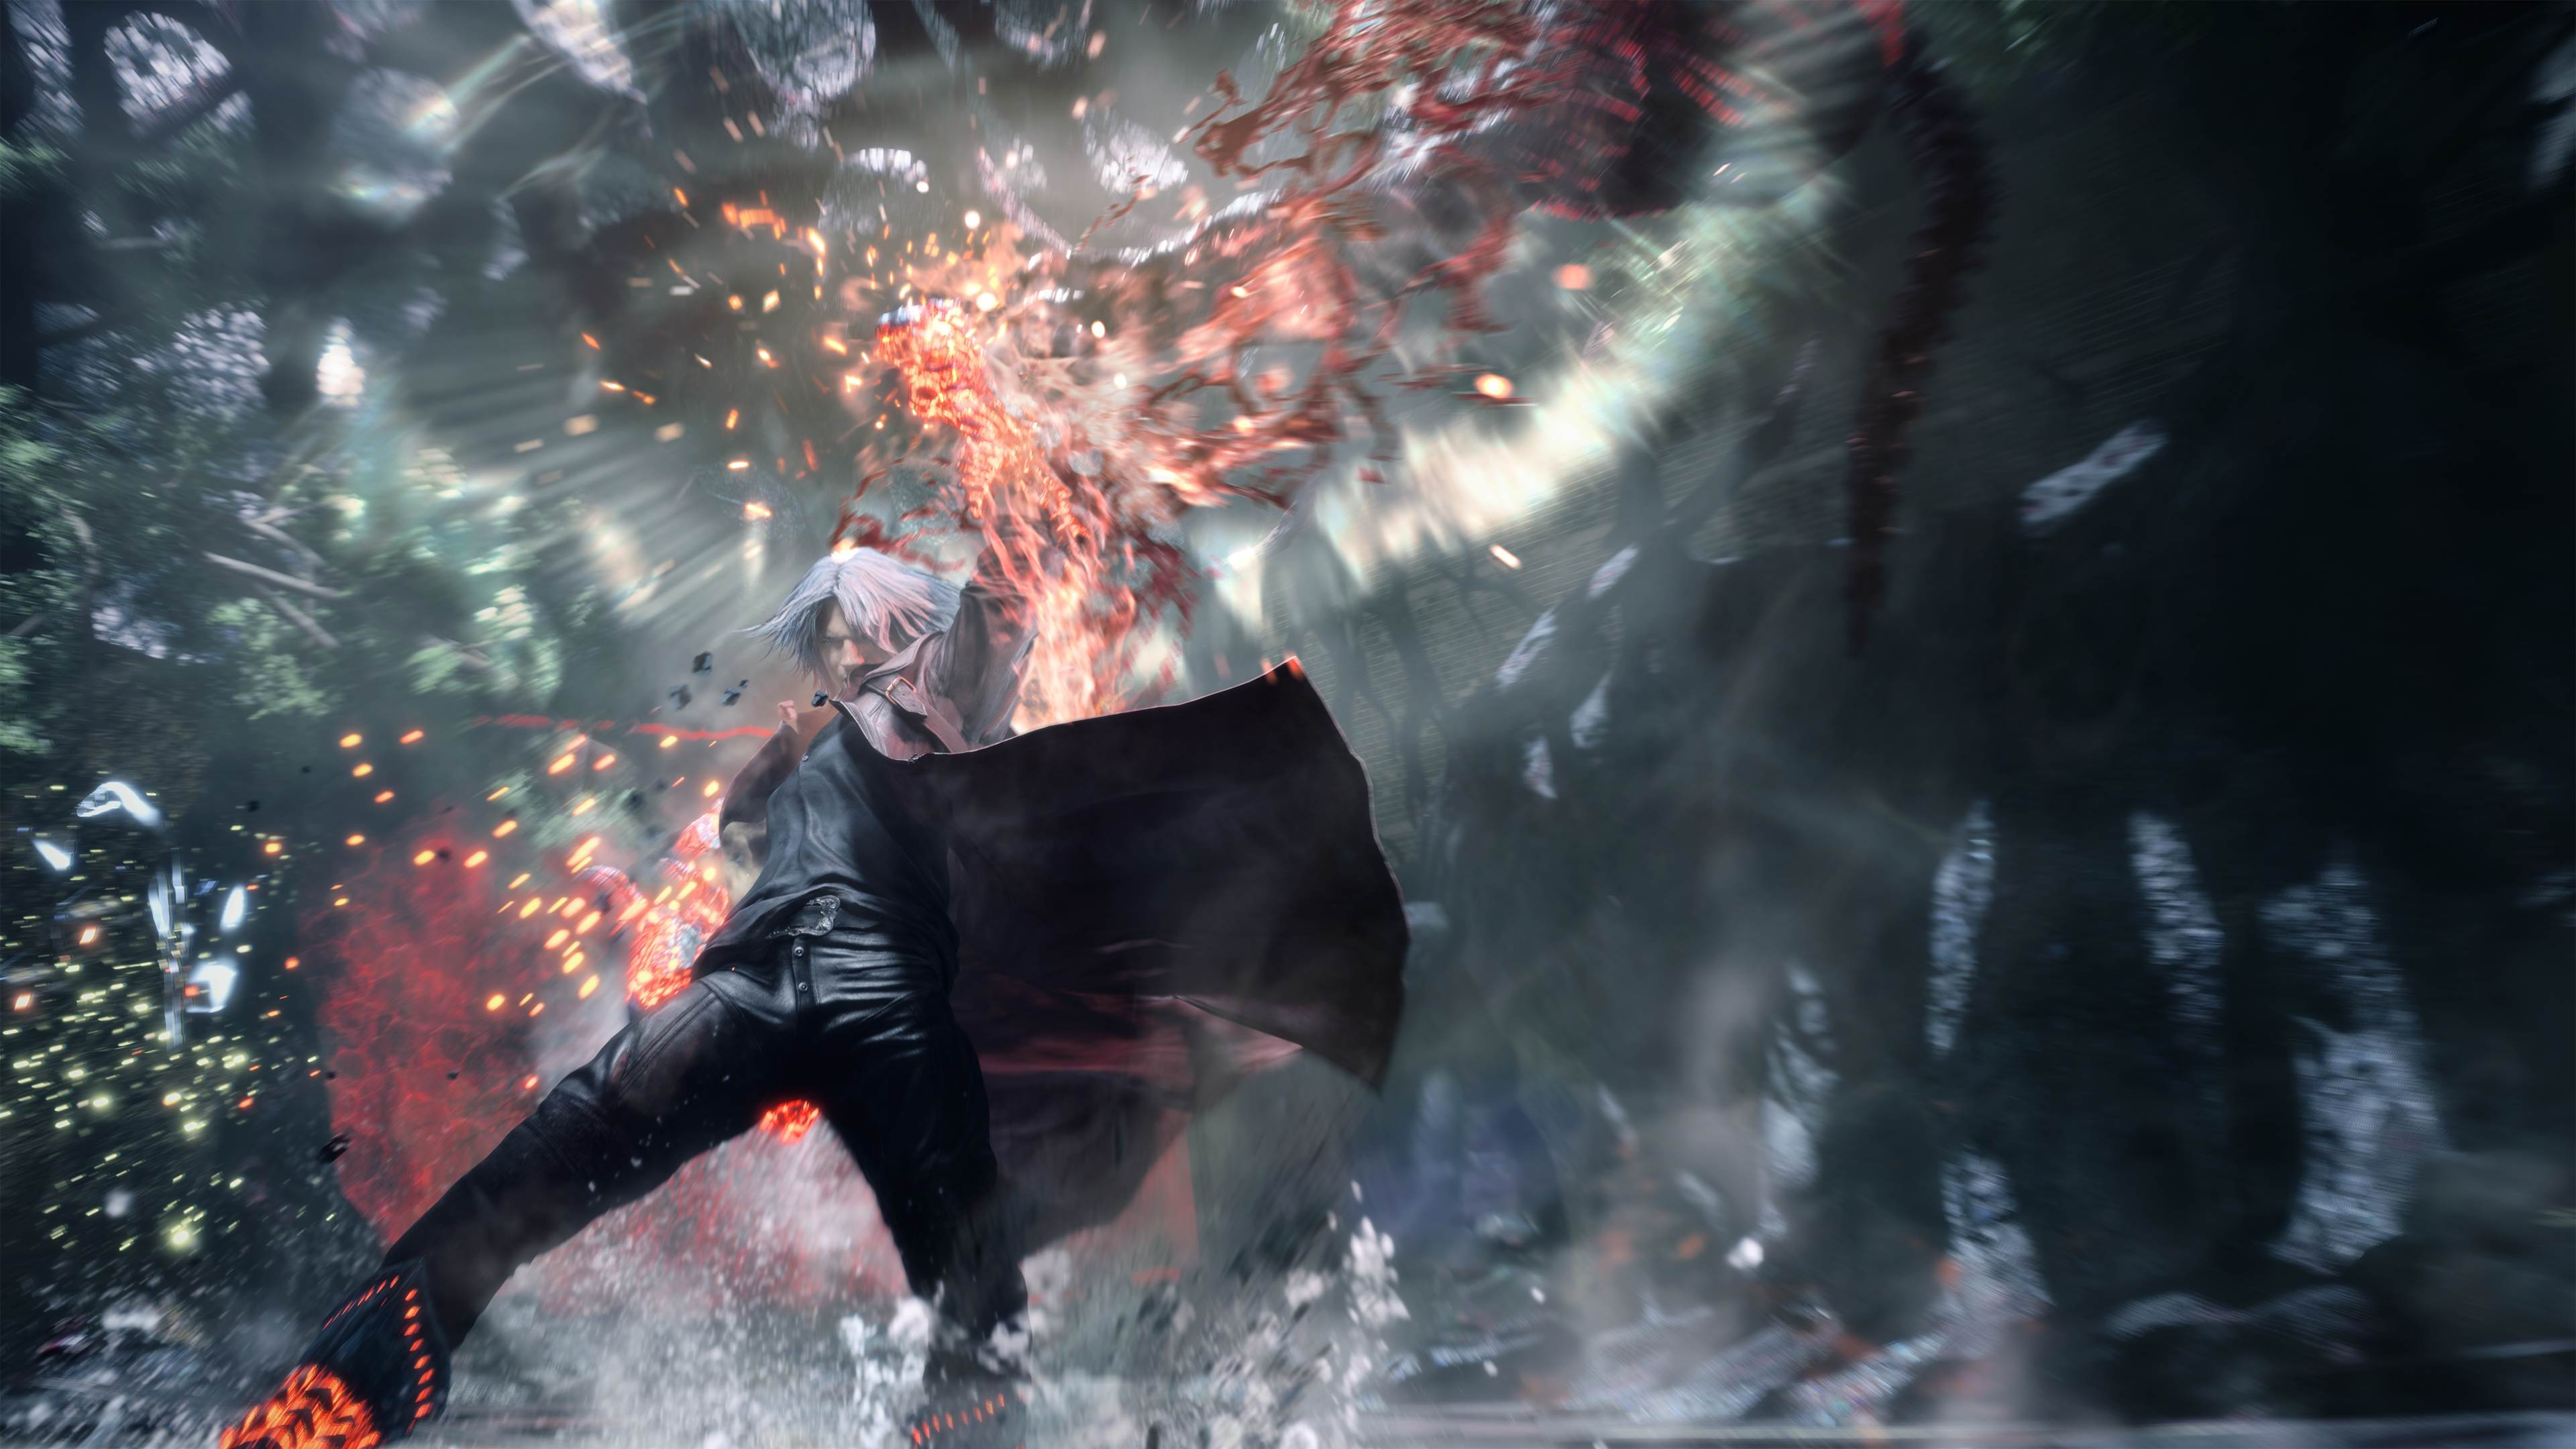 Devil May Cry 5 Wallpaper: Devil May Cry 5 4k 2019 Game, HD Games, 4k Wallpapers